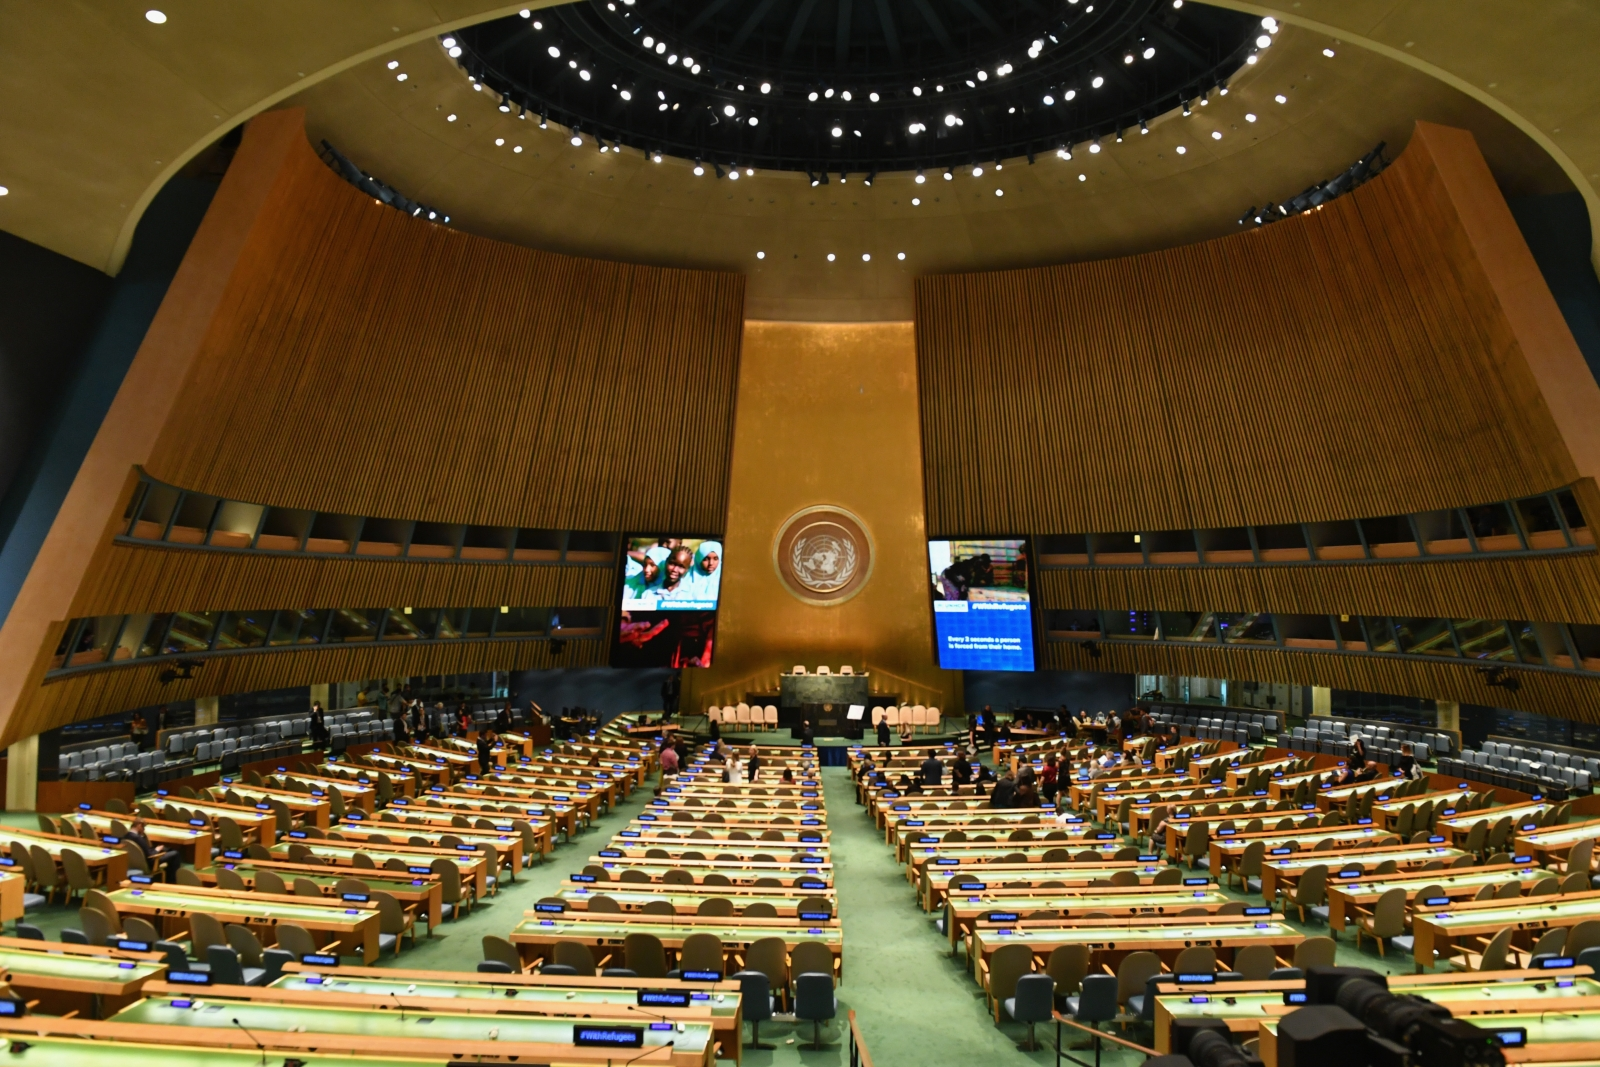 View of the General Assembly Hall